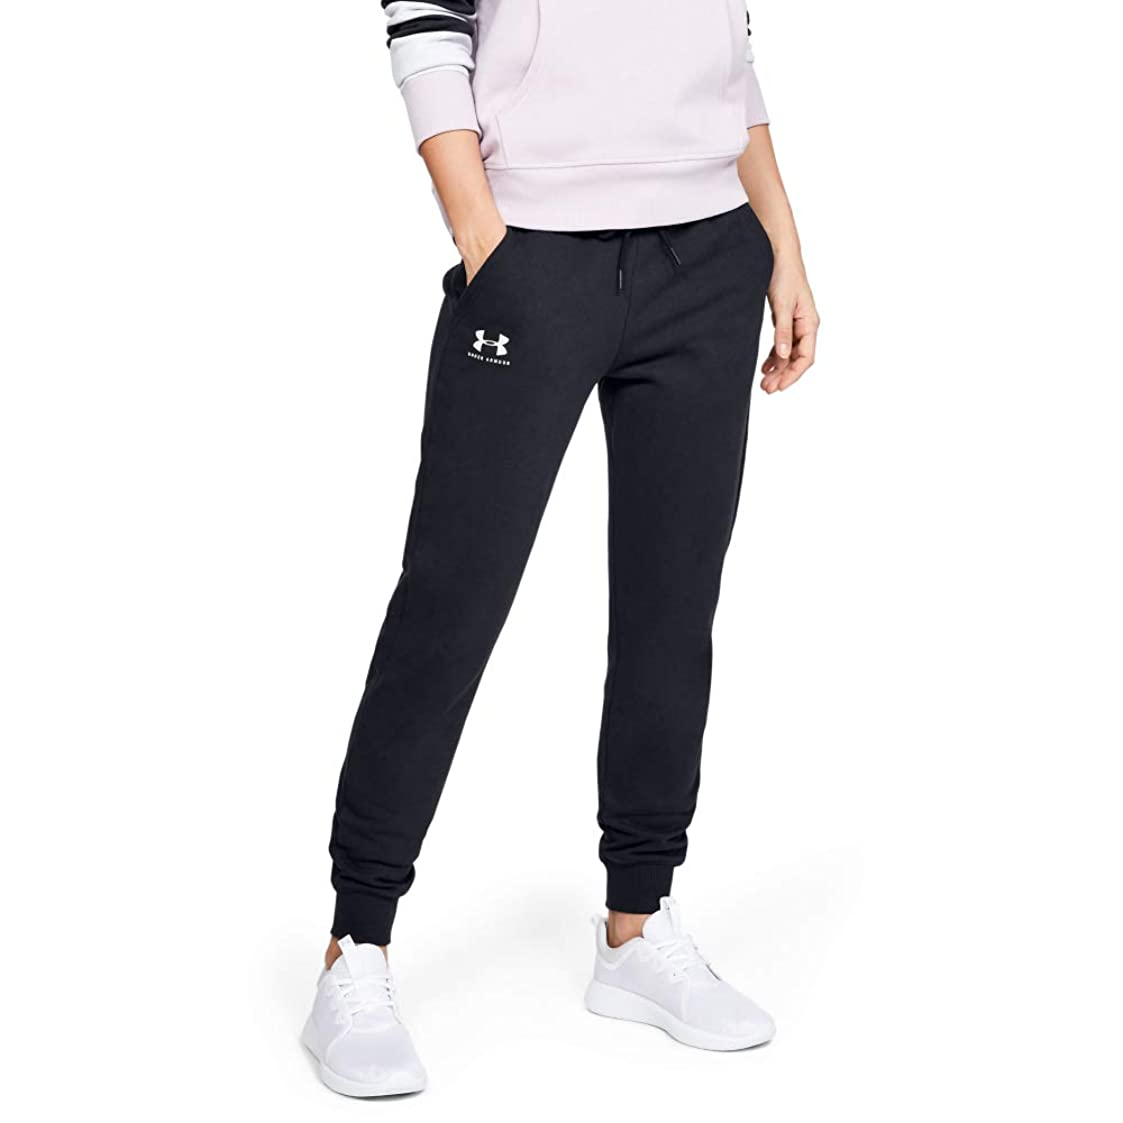 実現可能行動返済Rival Fleece Sportstyle Graphic Pant, Black (001)/Onyx White, XX-Large